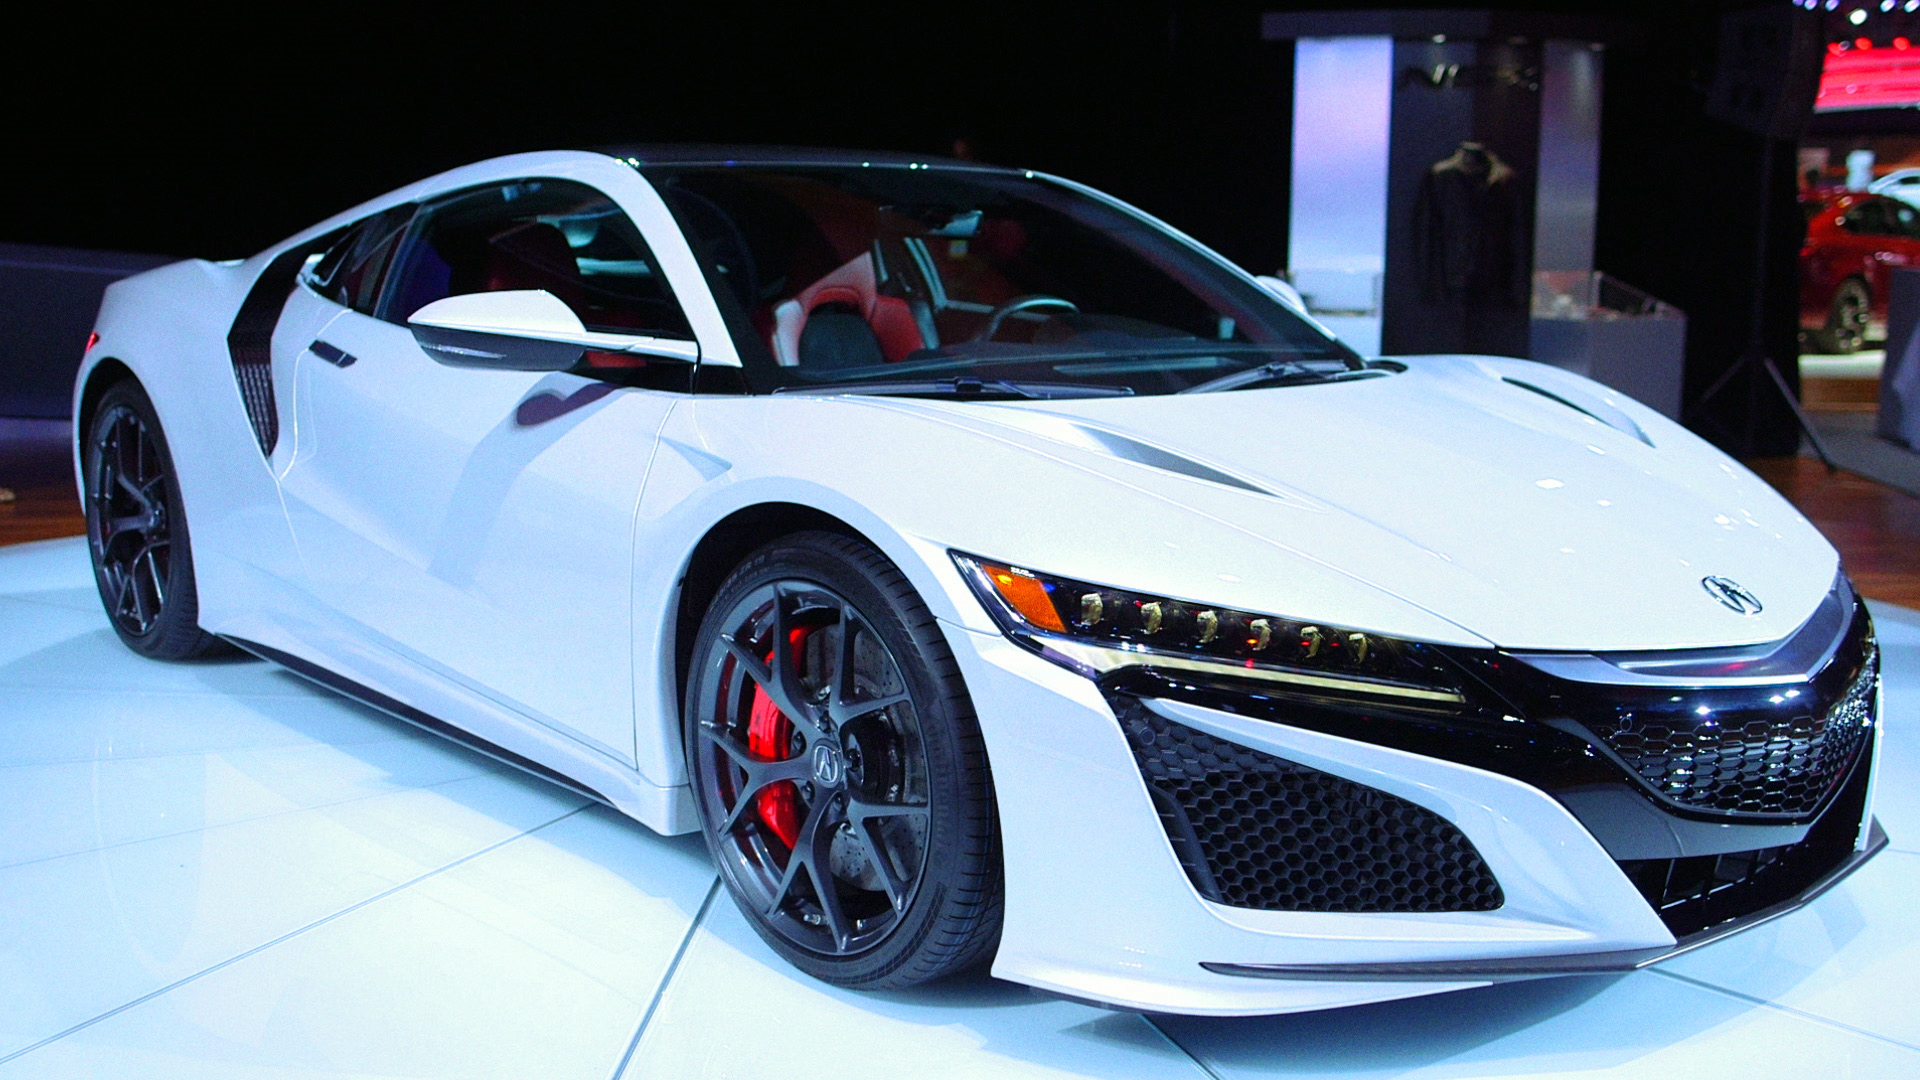 acura nsx is polished and speedy sports car luxury bloomberg business. Black Bedroom Furniture Sets. Home Design Ideas